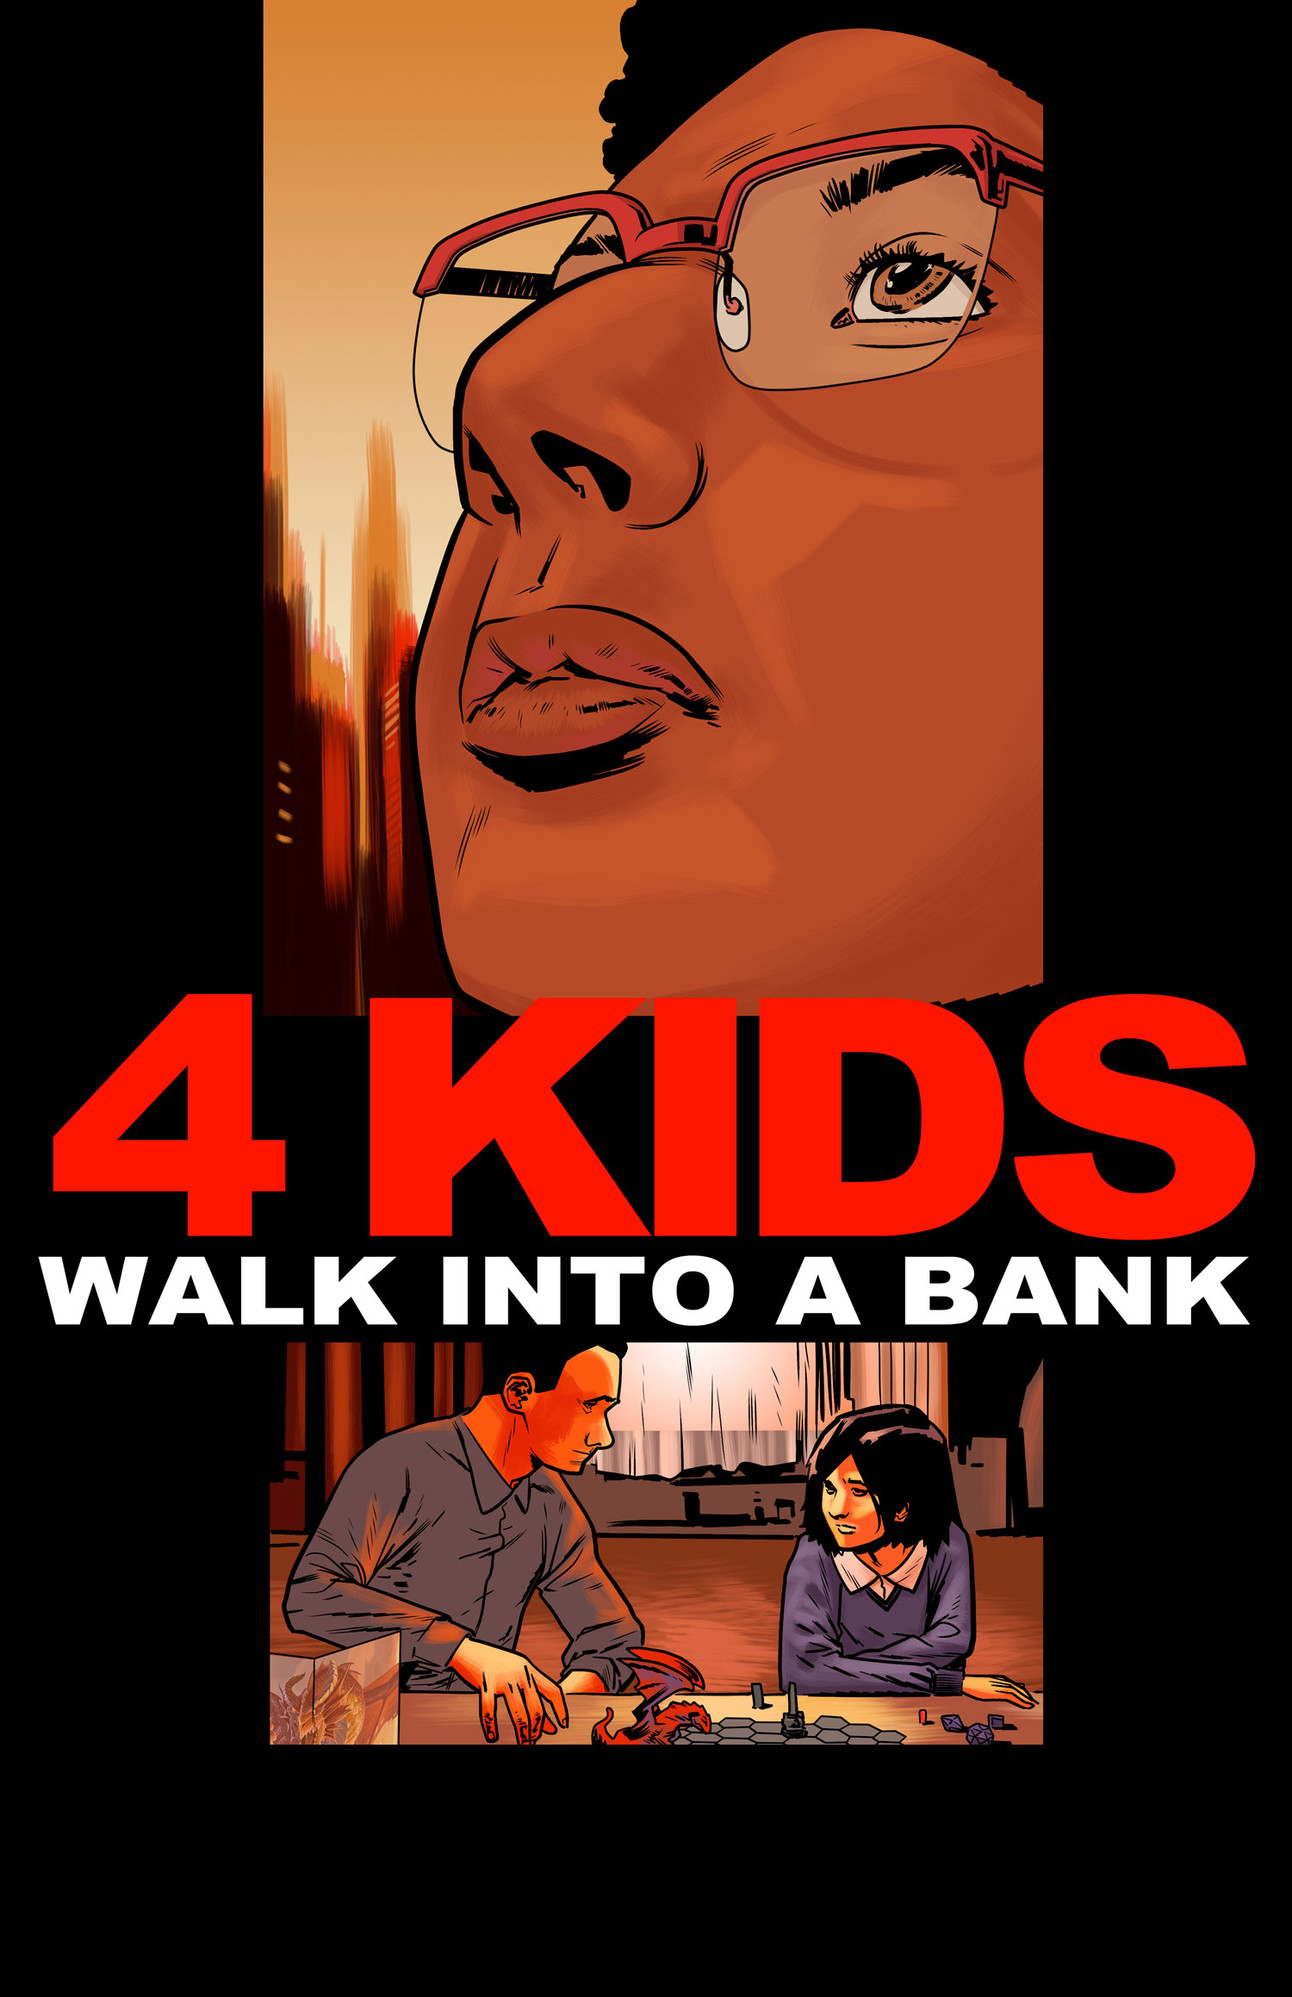 The hit indie comic 4 Kids Walk Into A Bank pays homage to